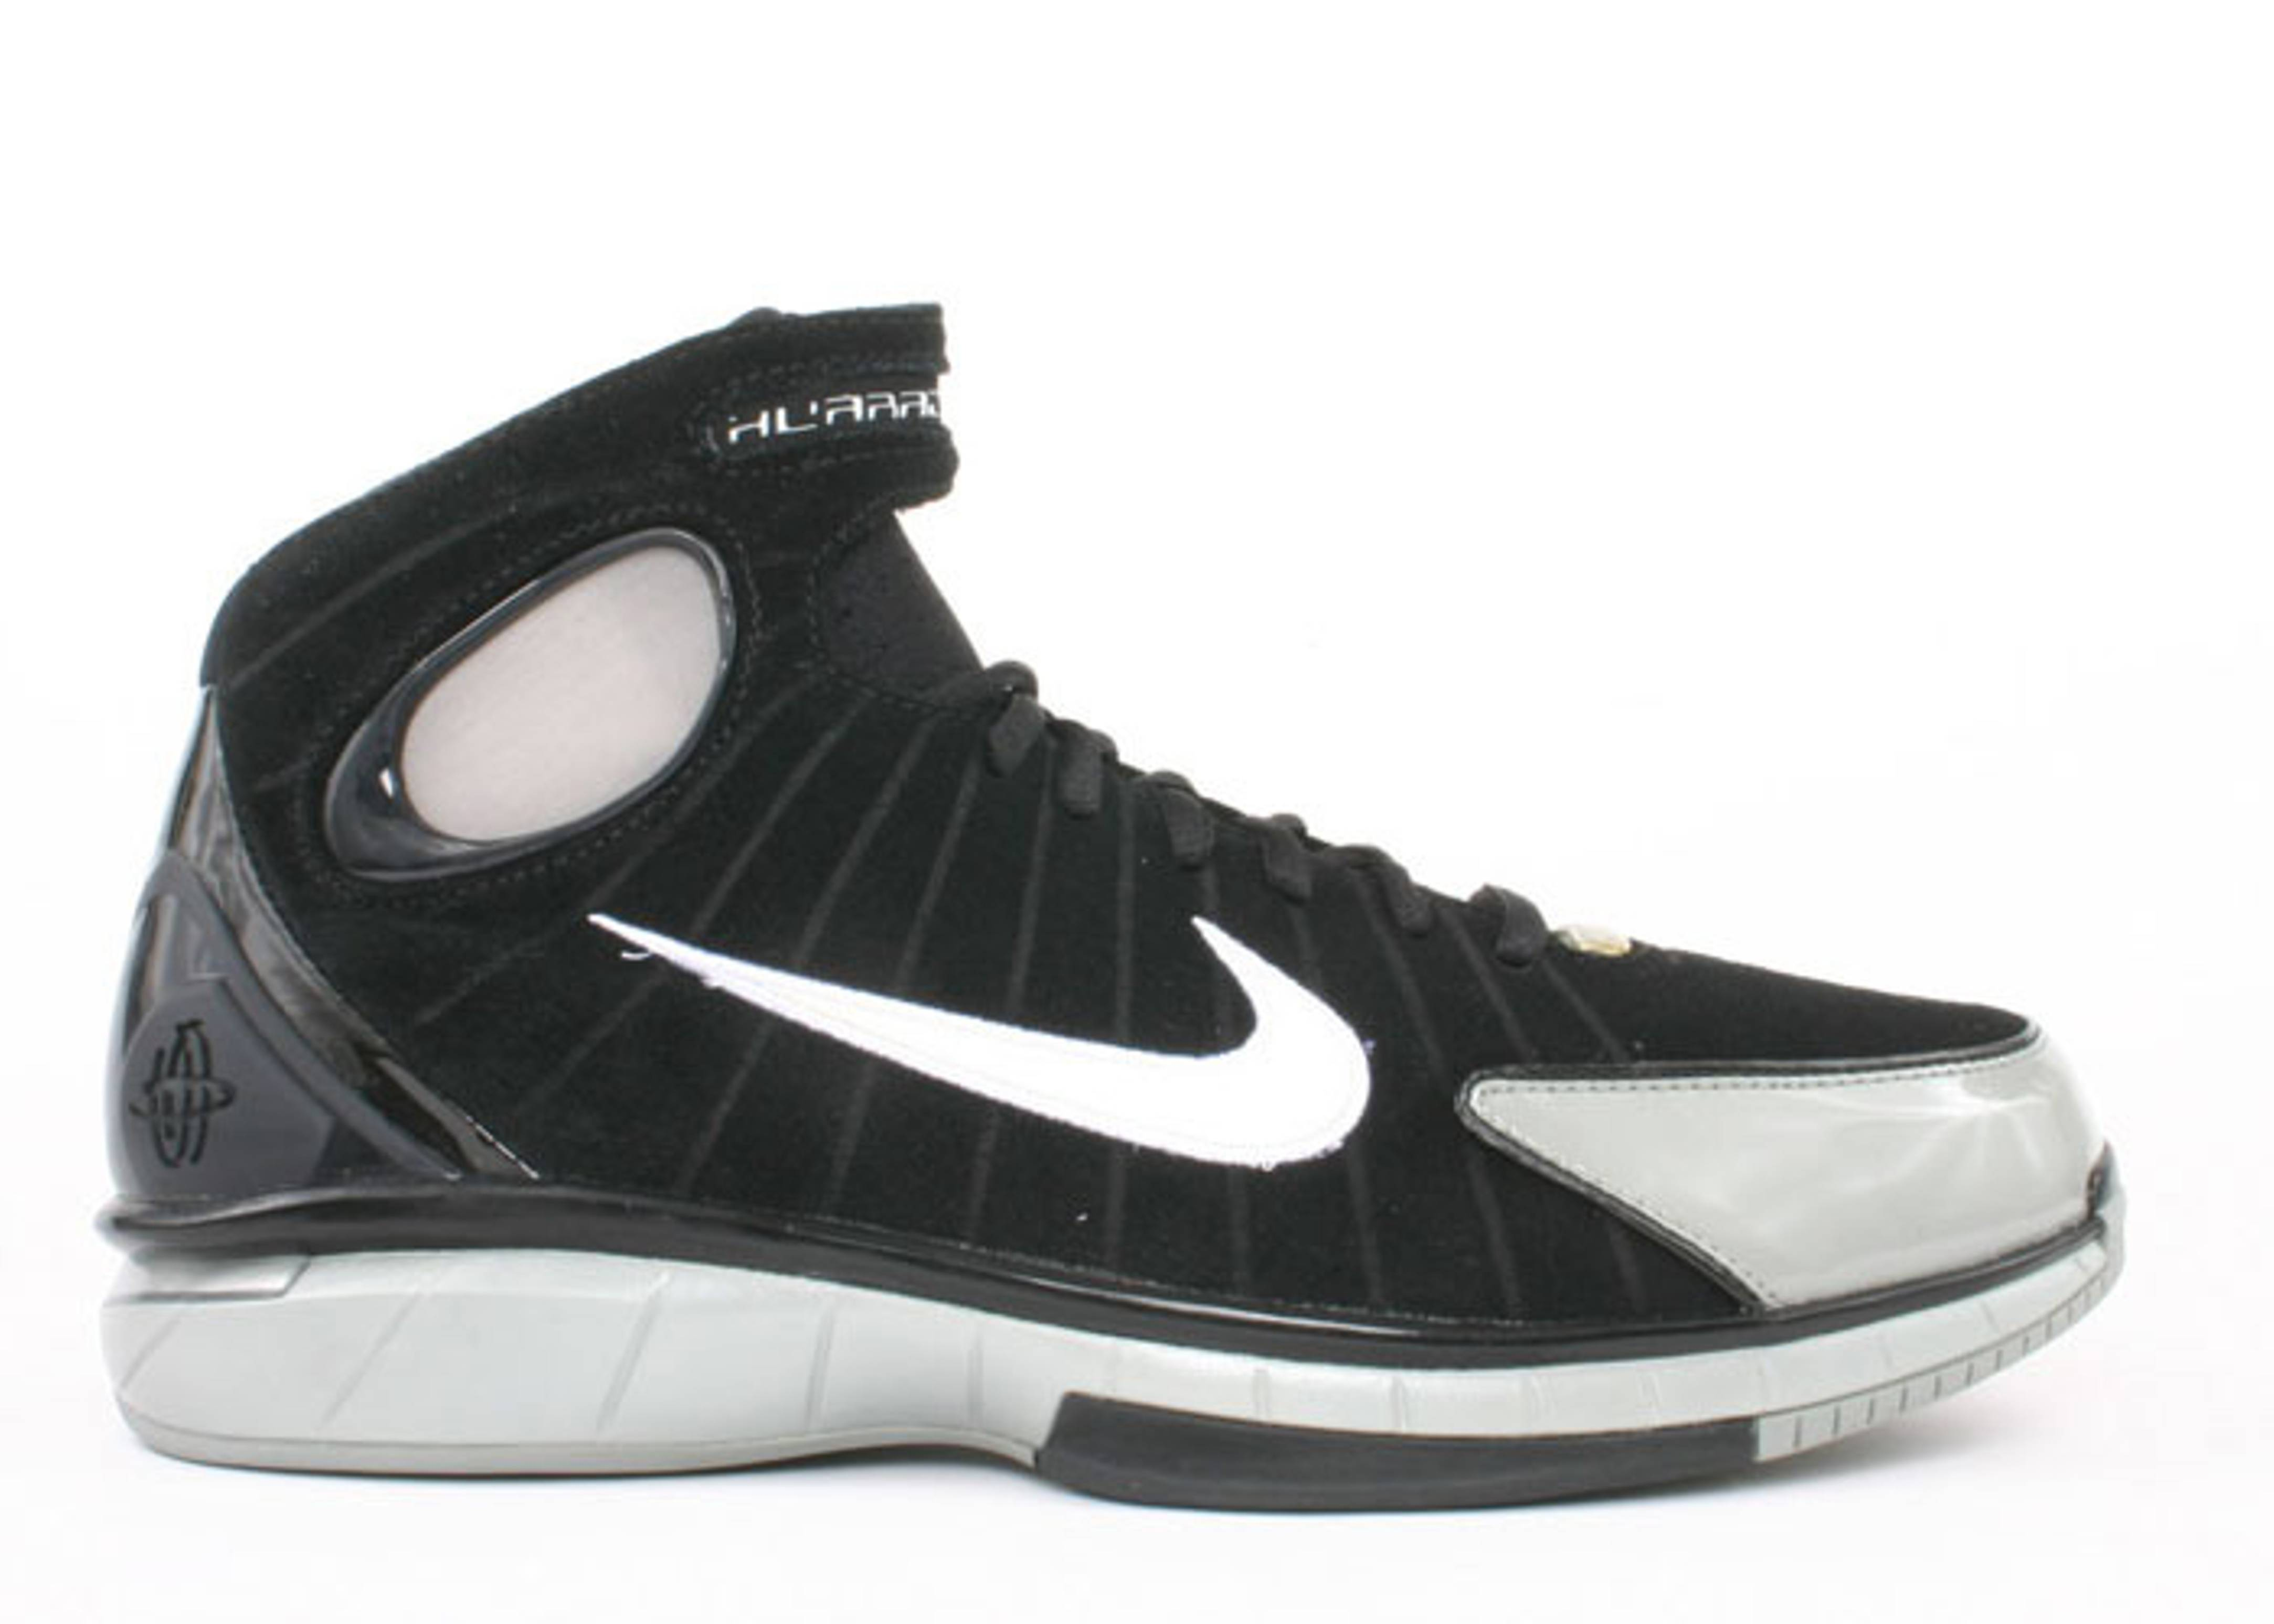 air zoom huarache 2k4